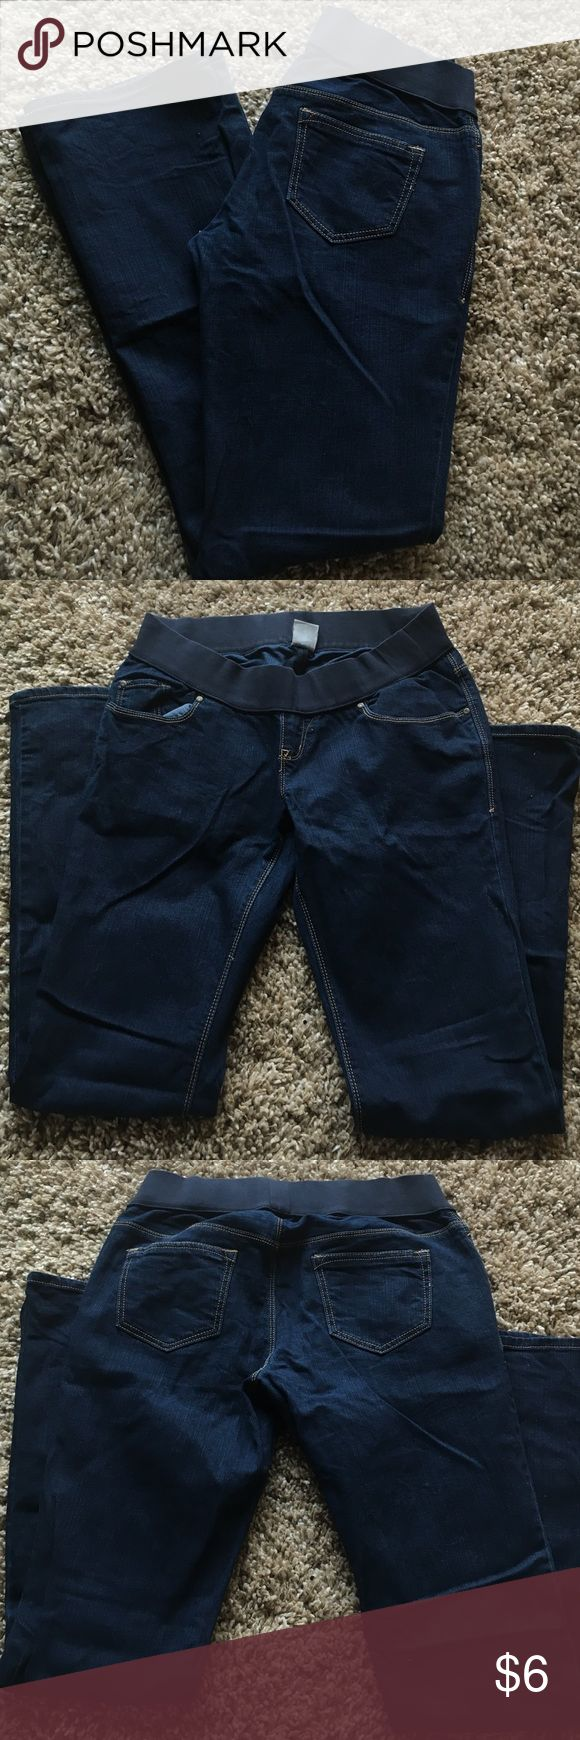 Old Navy Maternity Jeans Old Navy Maternity Jeans- almost new/excellent condition!- under belly band- sz 4- boot cut- solid dark blue wash- these are a steal! Old Navy Jeans Boot Cut